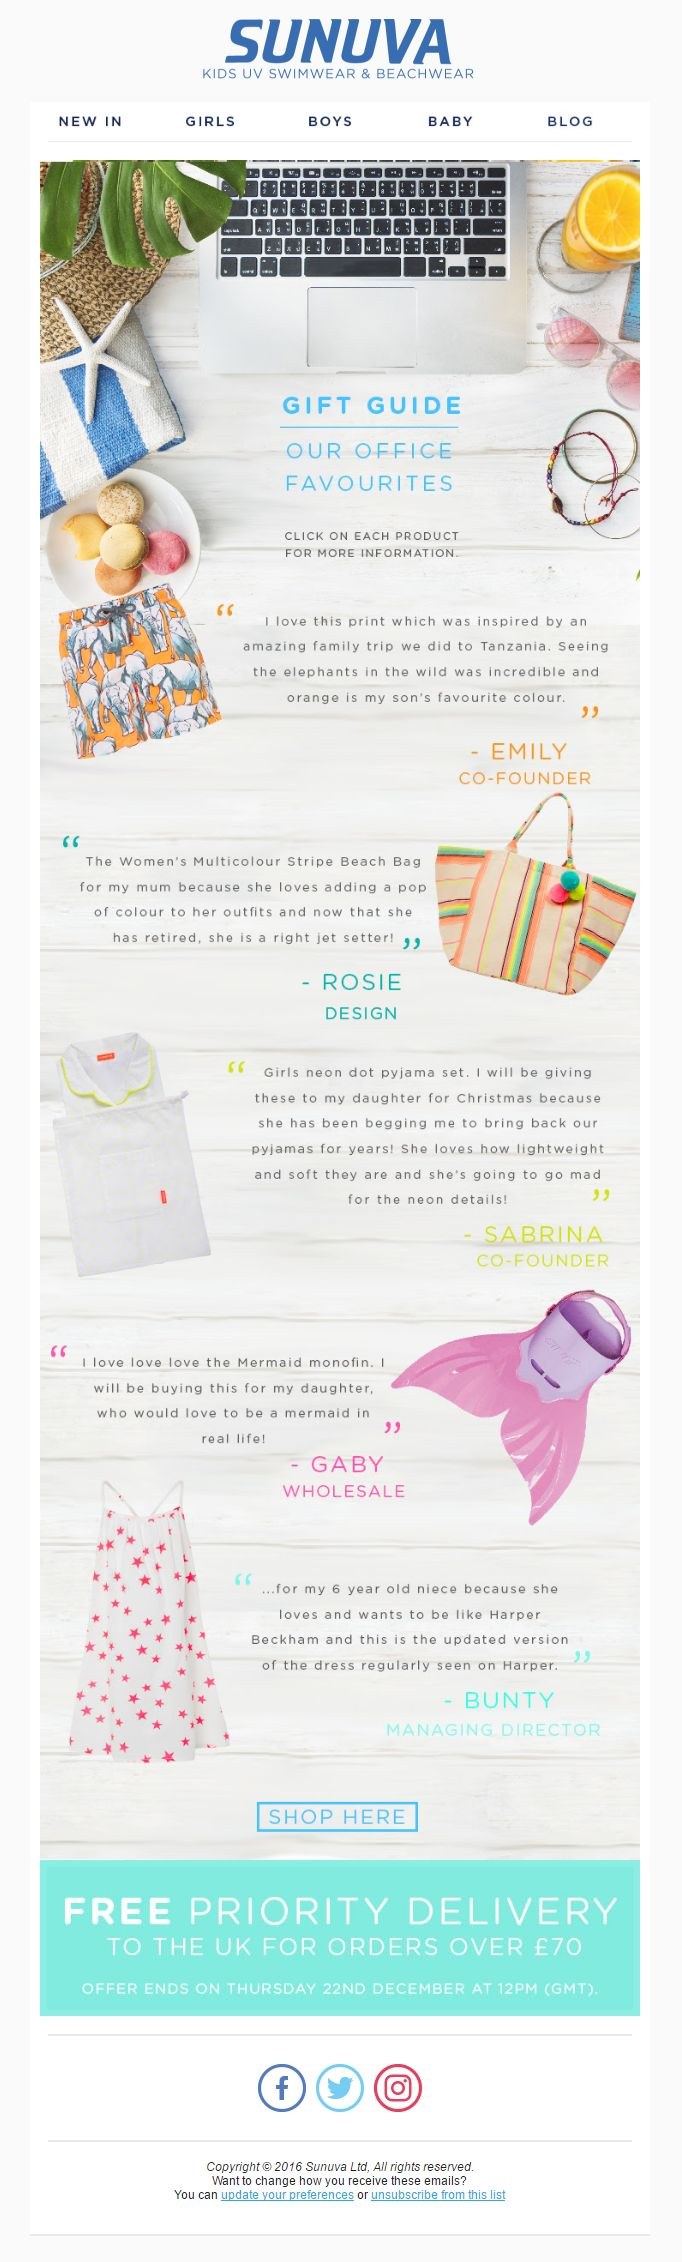 Sunuva Social Proof Email with Recommendations from Employees #EmailMarketing #Email #Marketing #SocialProof #Social #Proof #Fashion #Kids #Reviews